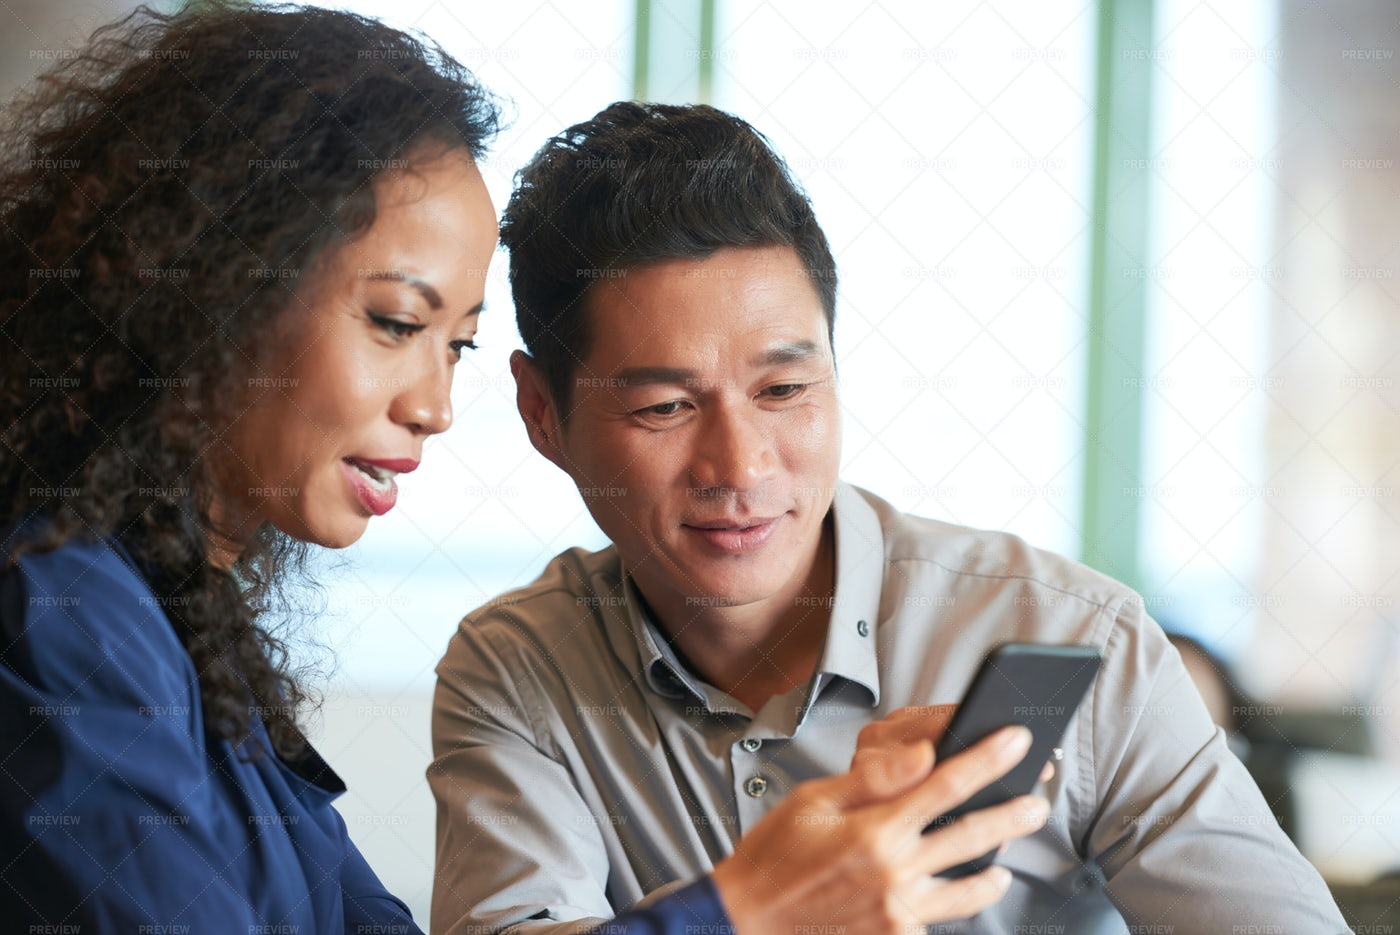 Reading News In Smartphone: Stock Photos